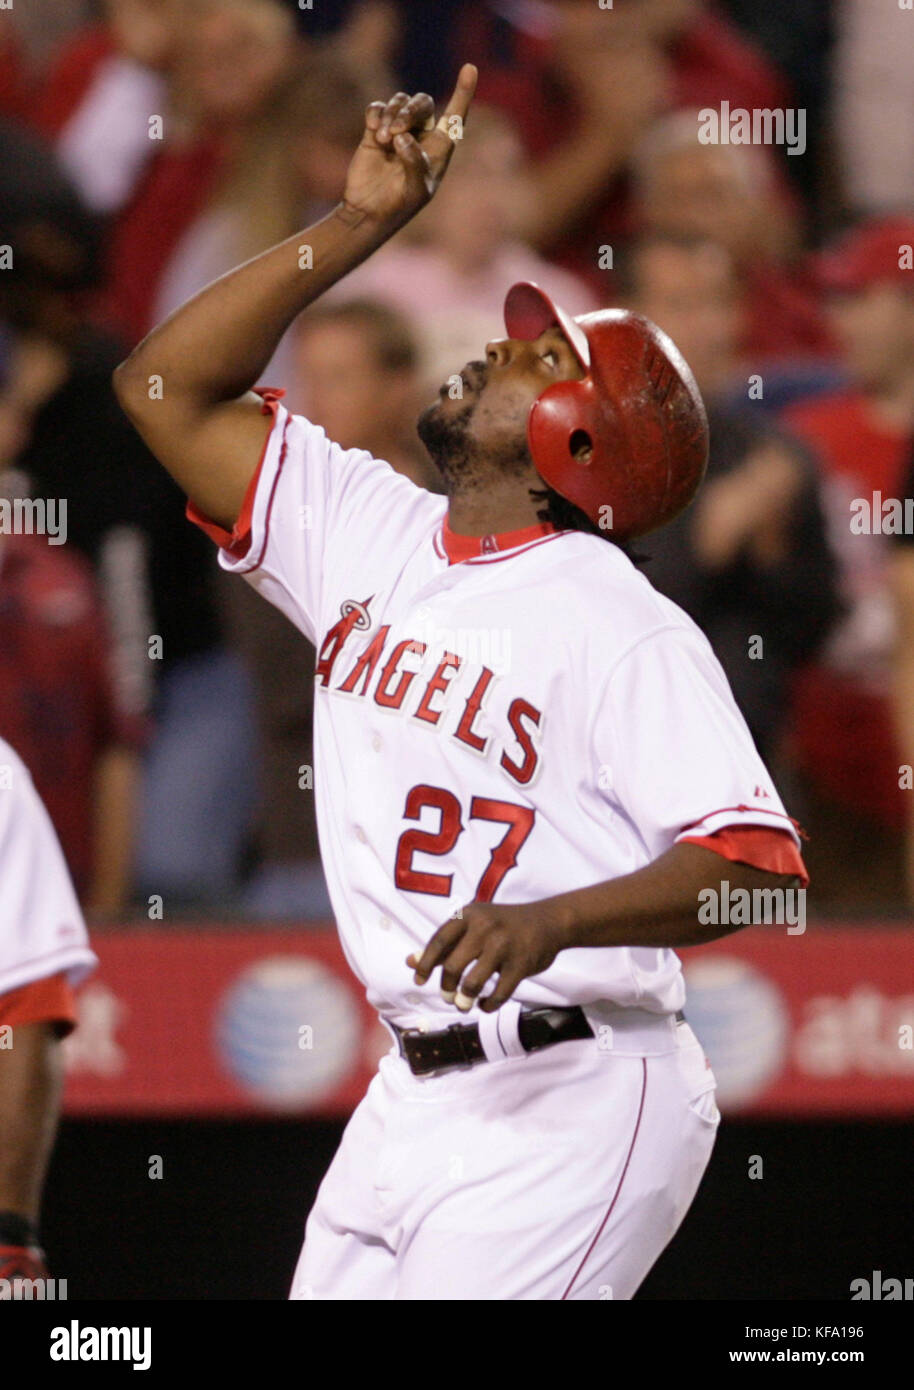 Los Angeles Angels' Vladimir Guerrero points to the sky while crossing home after hitting a two-run homer off  Tampa Bay Rays pitcher James Shields during the fifth inning of a baseball game in Anaheim, Calif. on Tuesday, June 10, 2008. Photo by Francis Specker Stock Photo